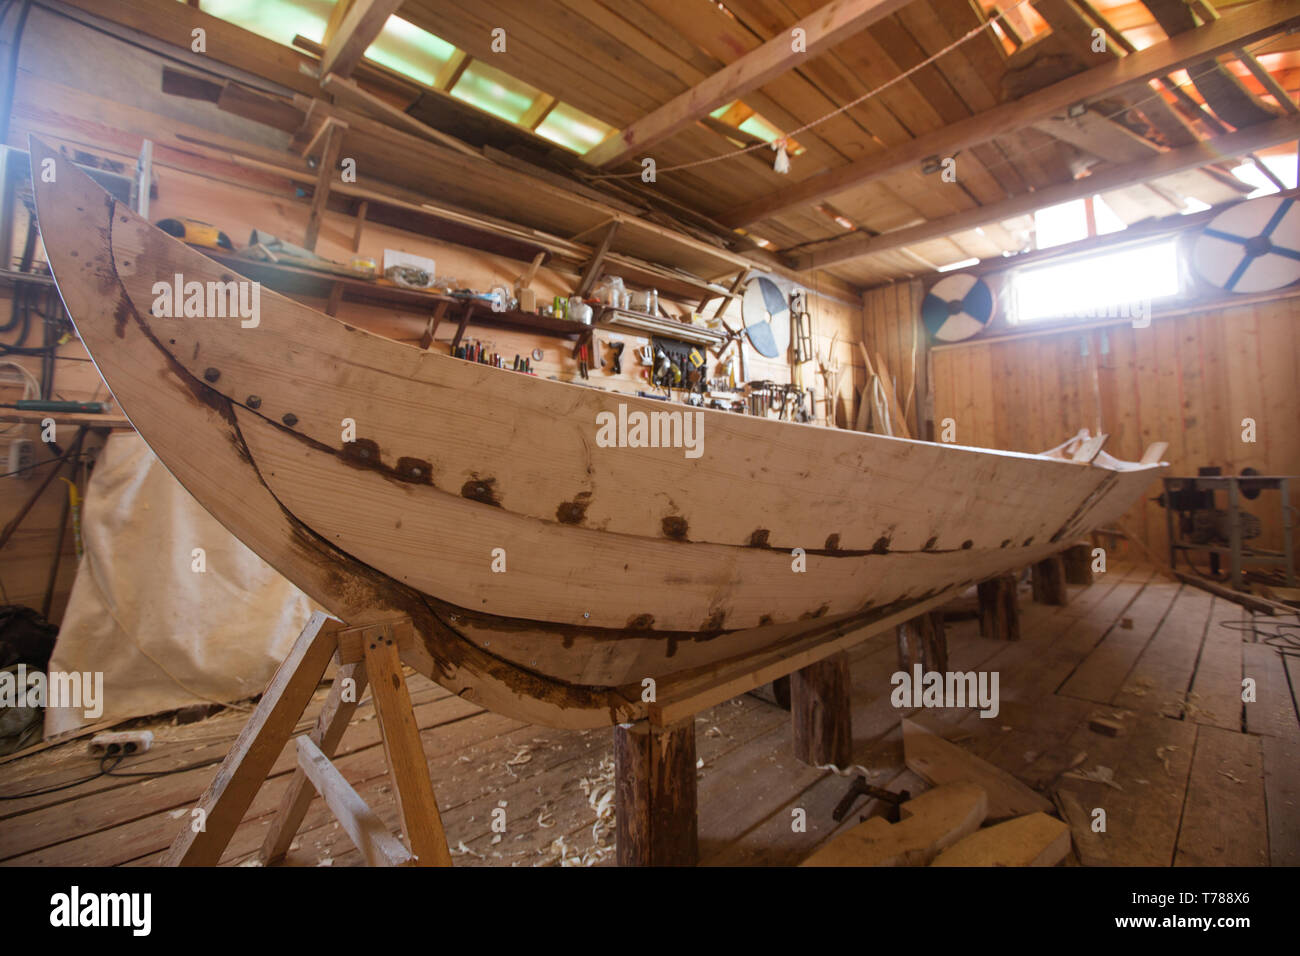 Handmade wooden boat in the barn , work tools on background - Stock Image